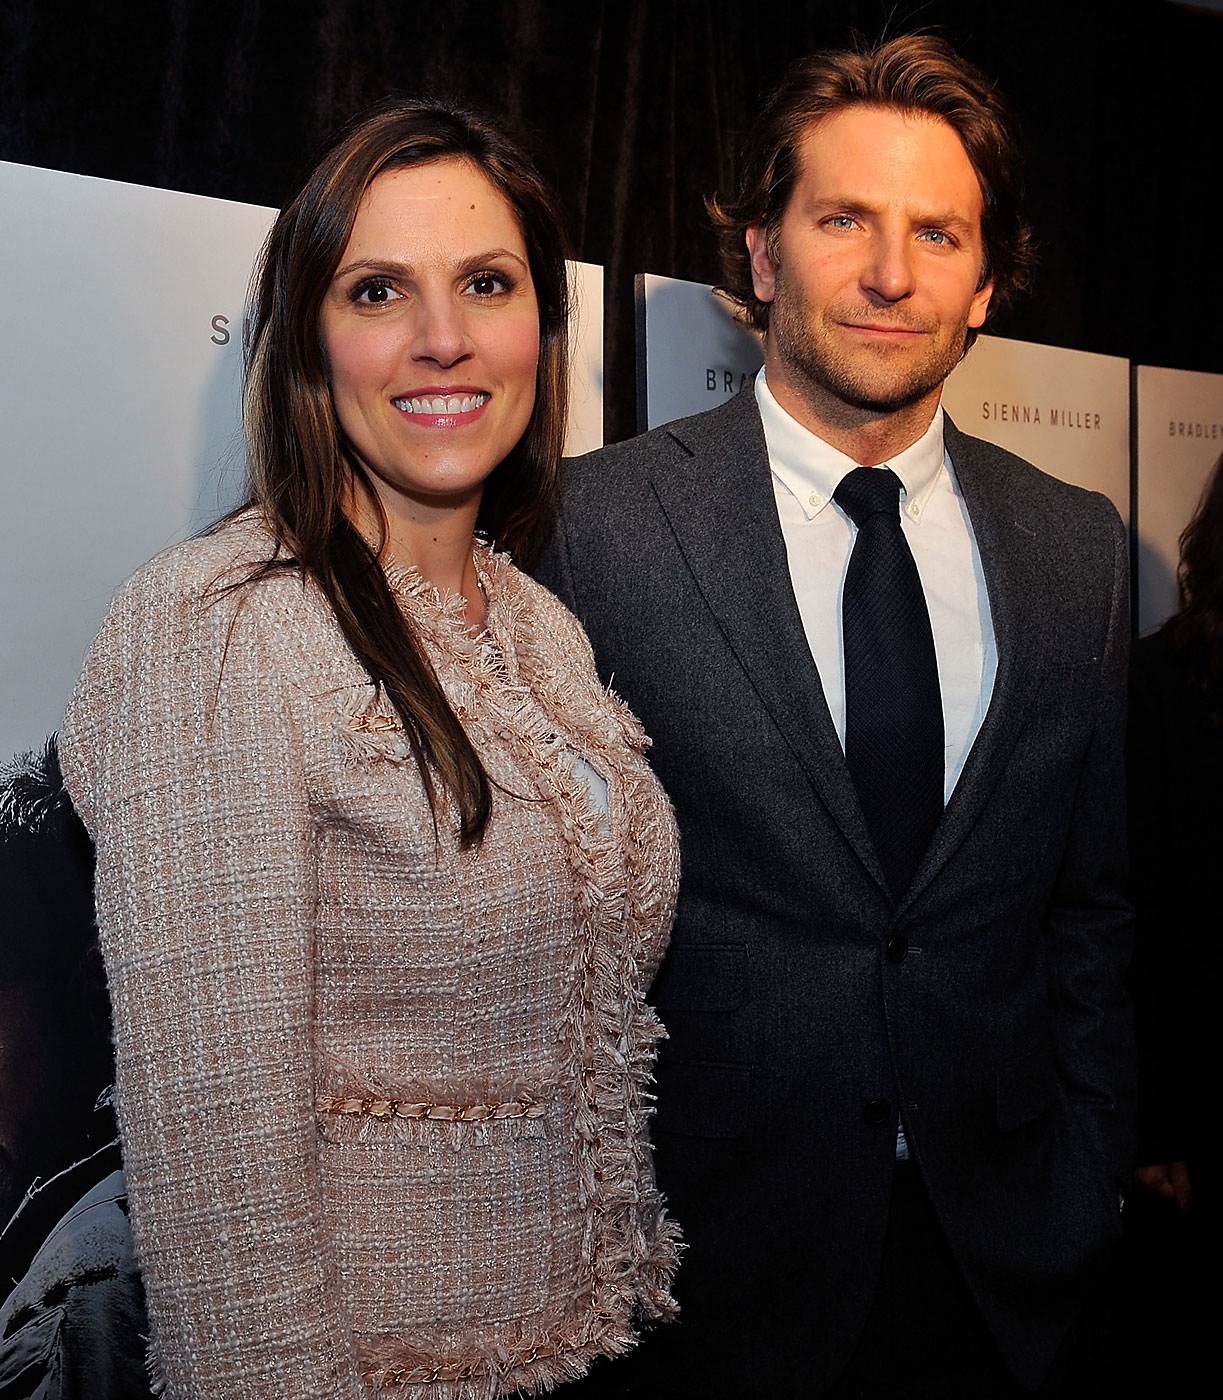 Taya Kyle, left, and Bradley Cooper attend the opening of American Sniper at the Burke Theater at the U.S. Navy Memorial on Jan. 13, 2015 in Washington, DC.